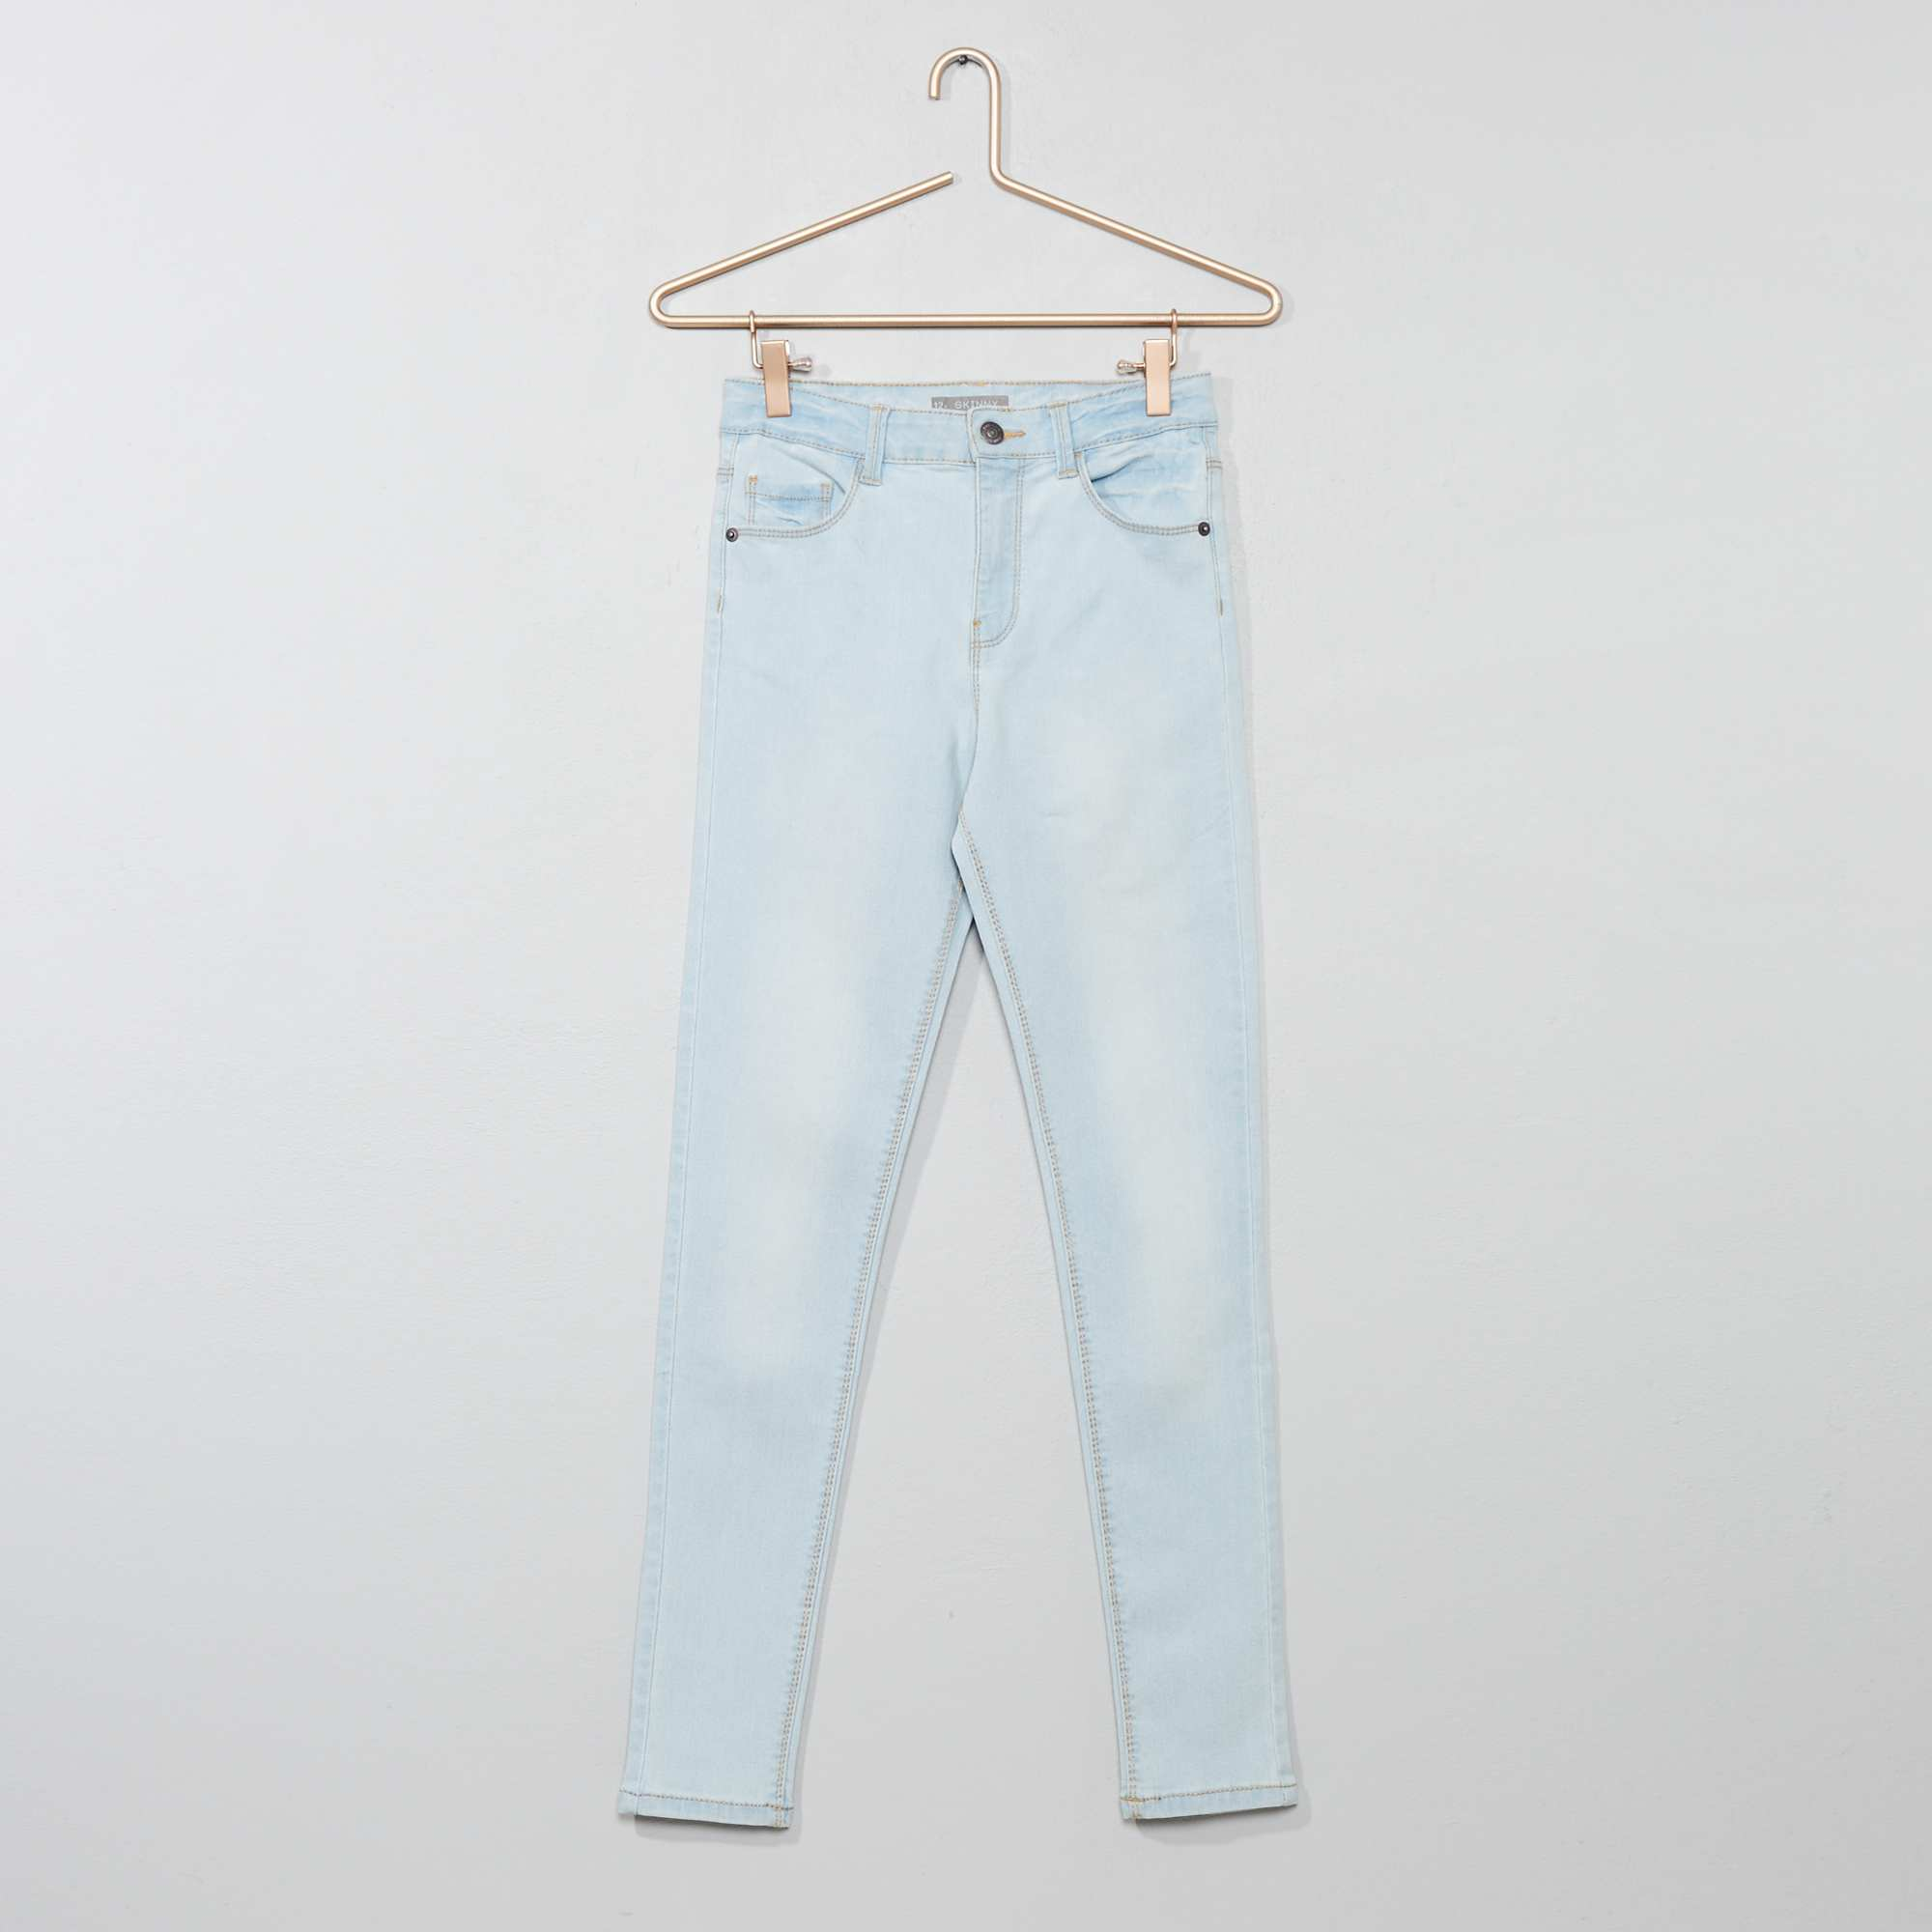 official photos d4957 aaced Jean skinny taille haute bleu clair Fille adolescente. Loading zoom